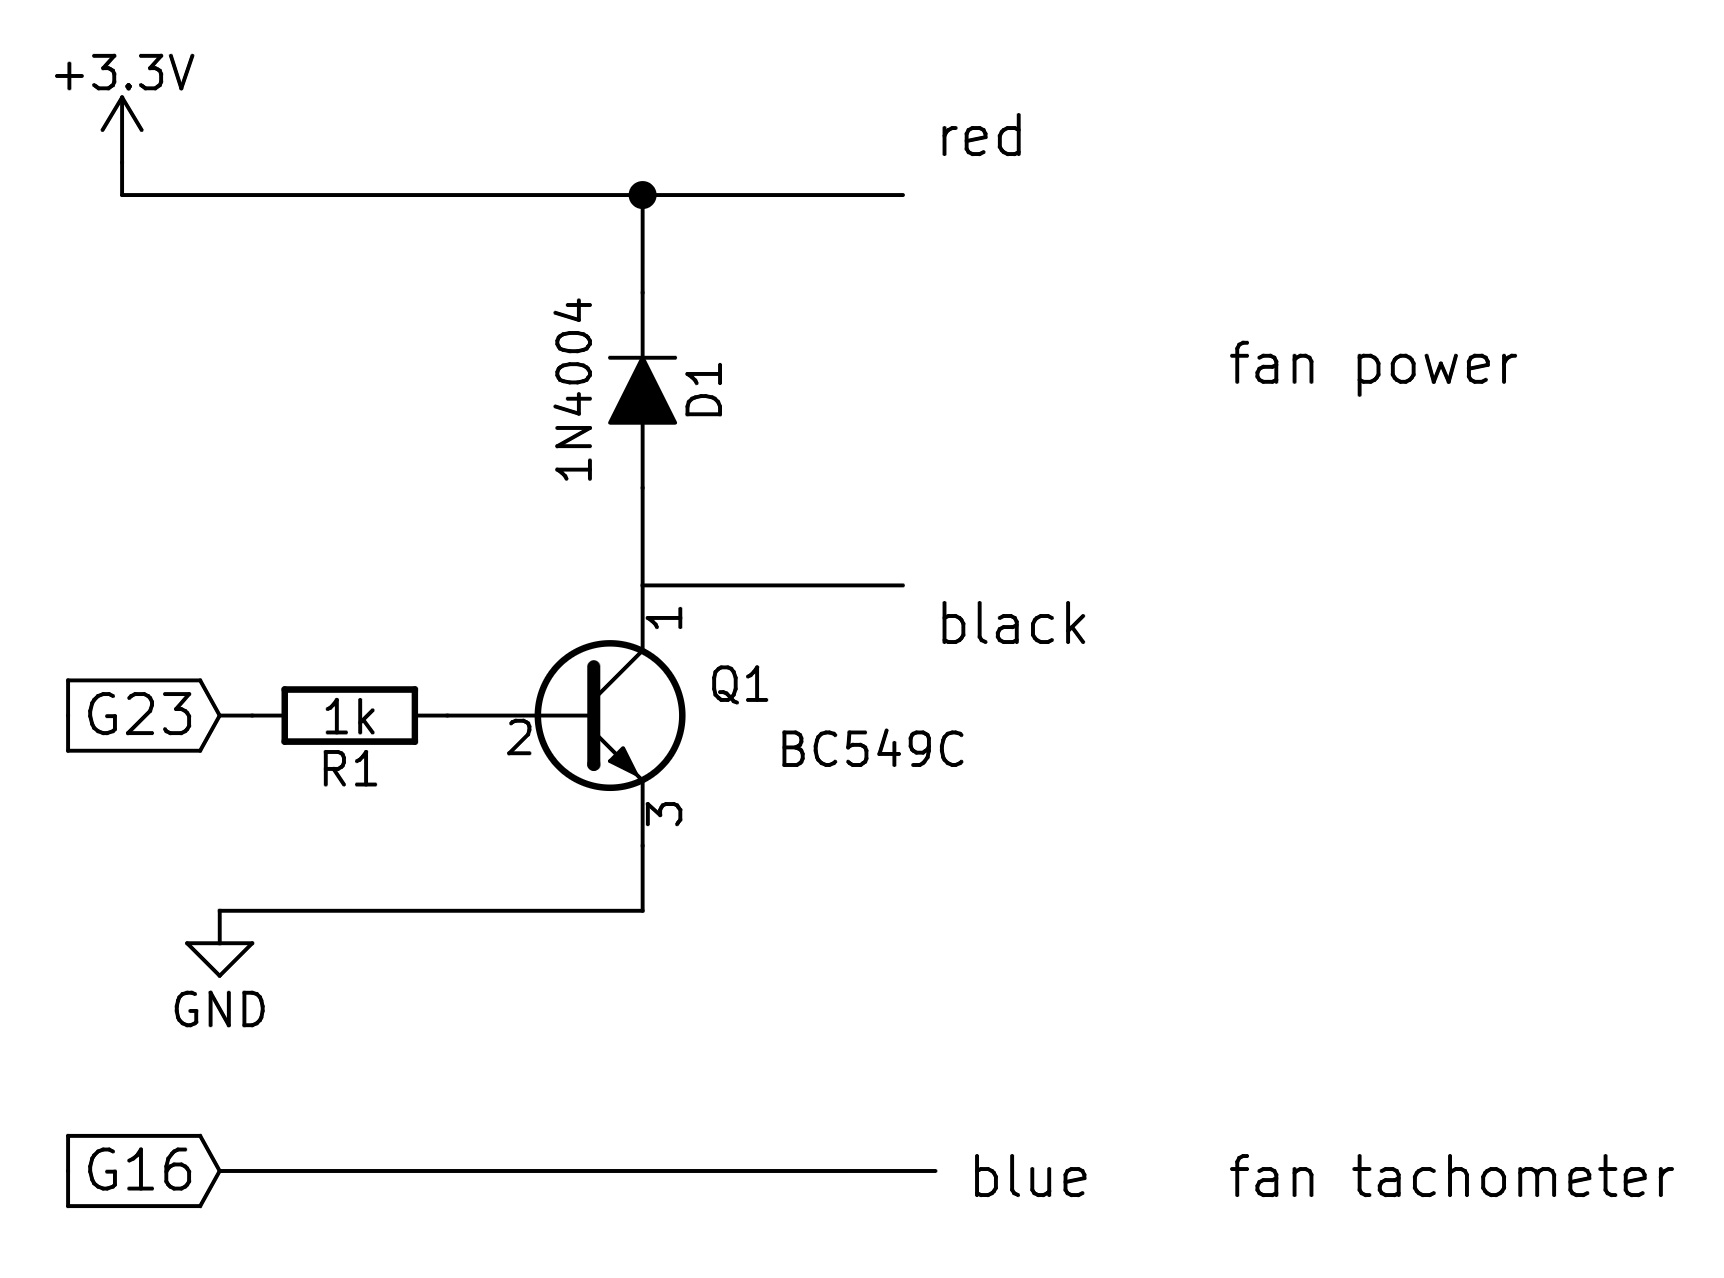 wiring 3w pwm fan wire diagram diagrams for wiring bathroom fan and lights  at crackthecode.co